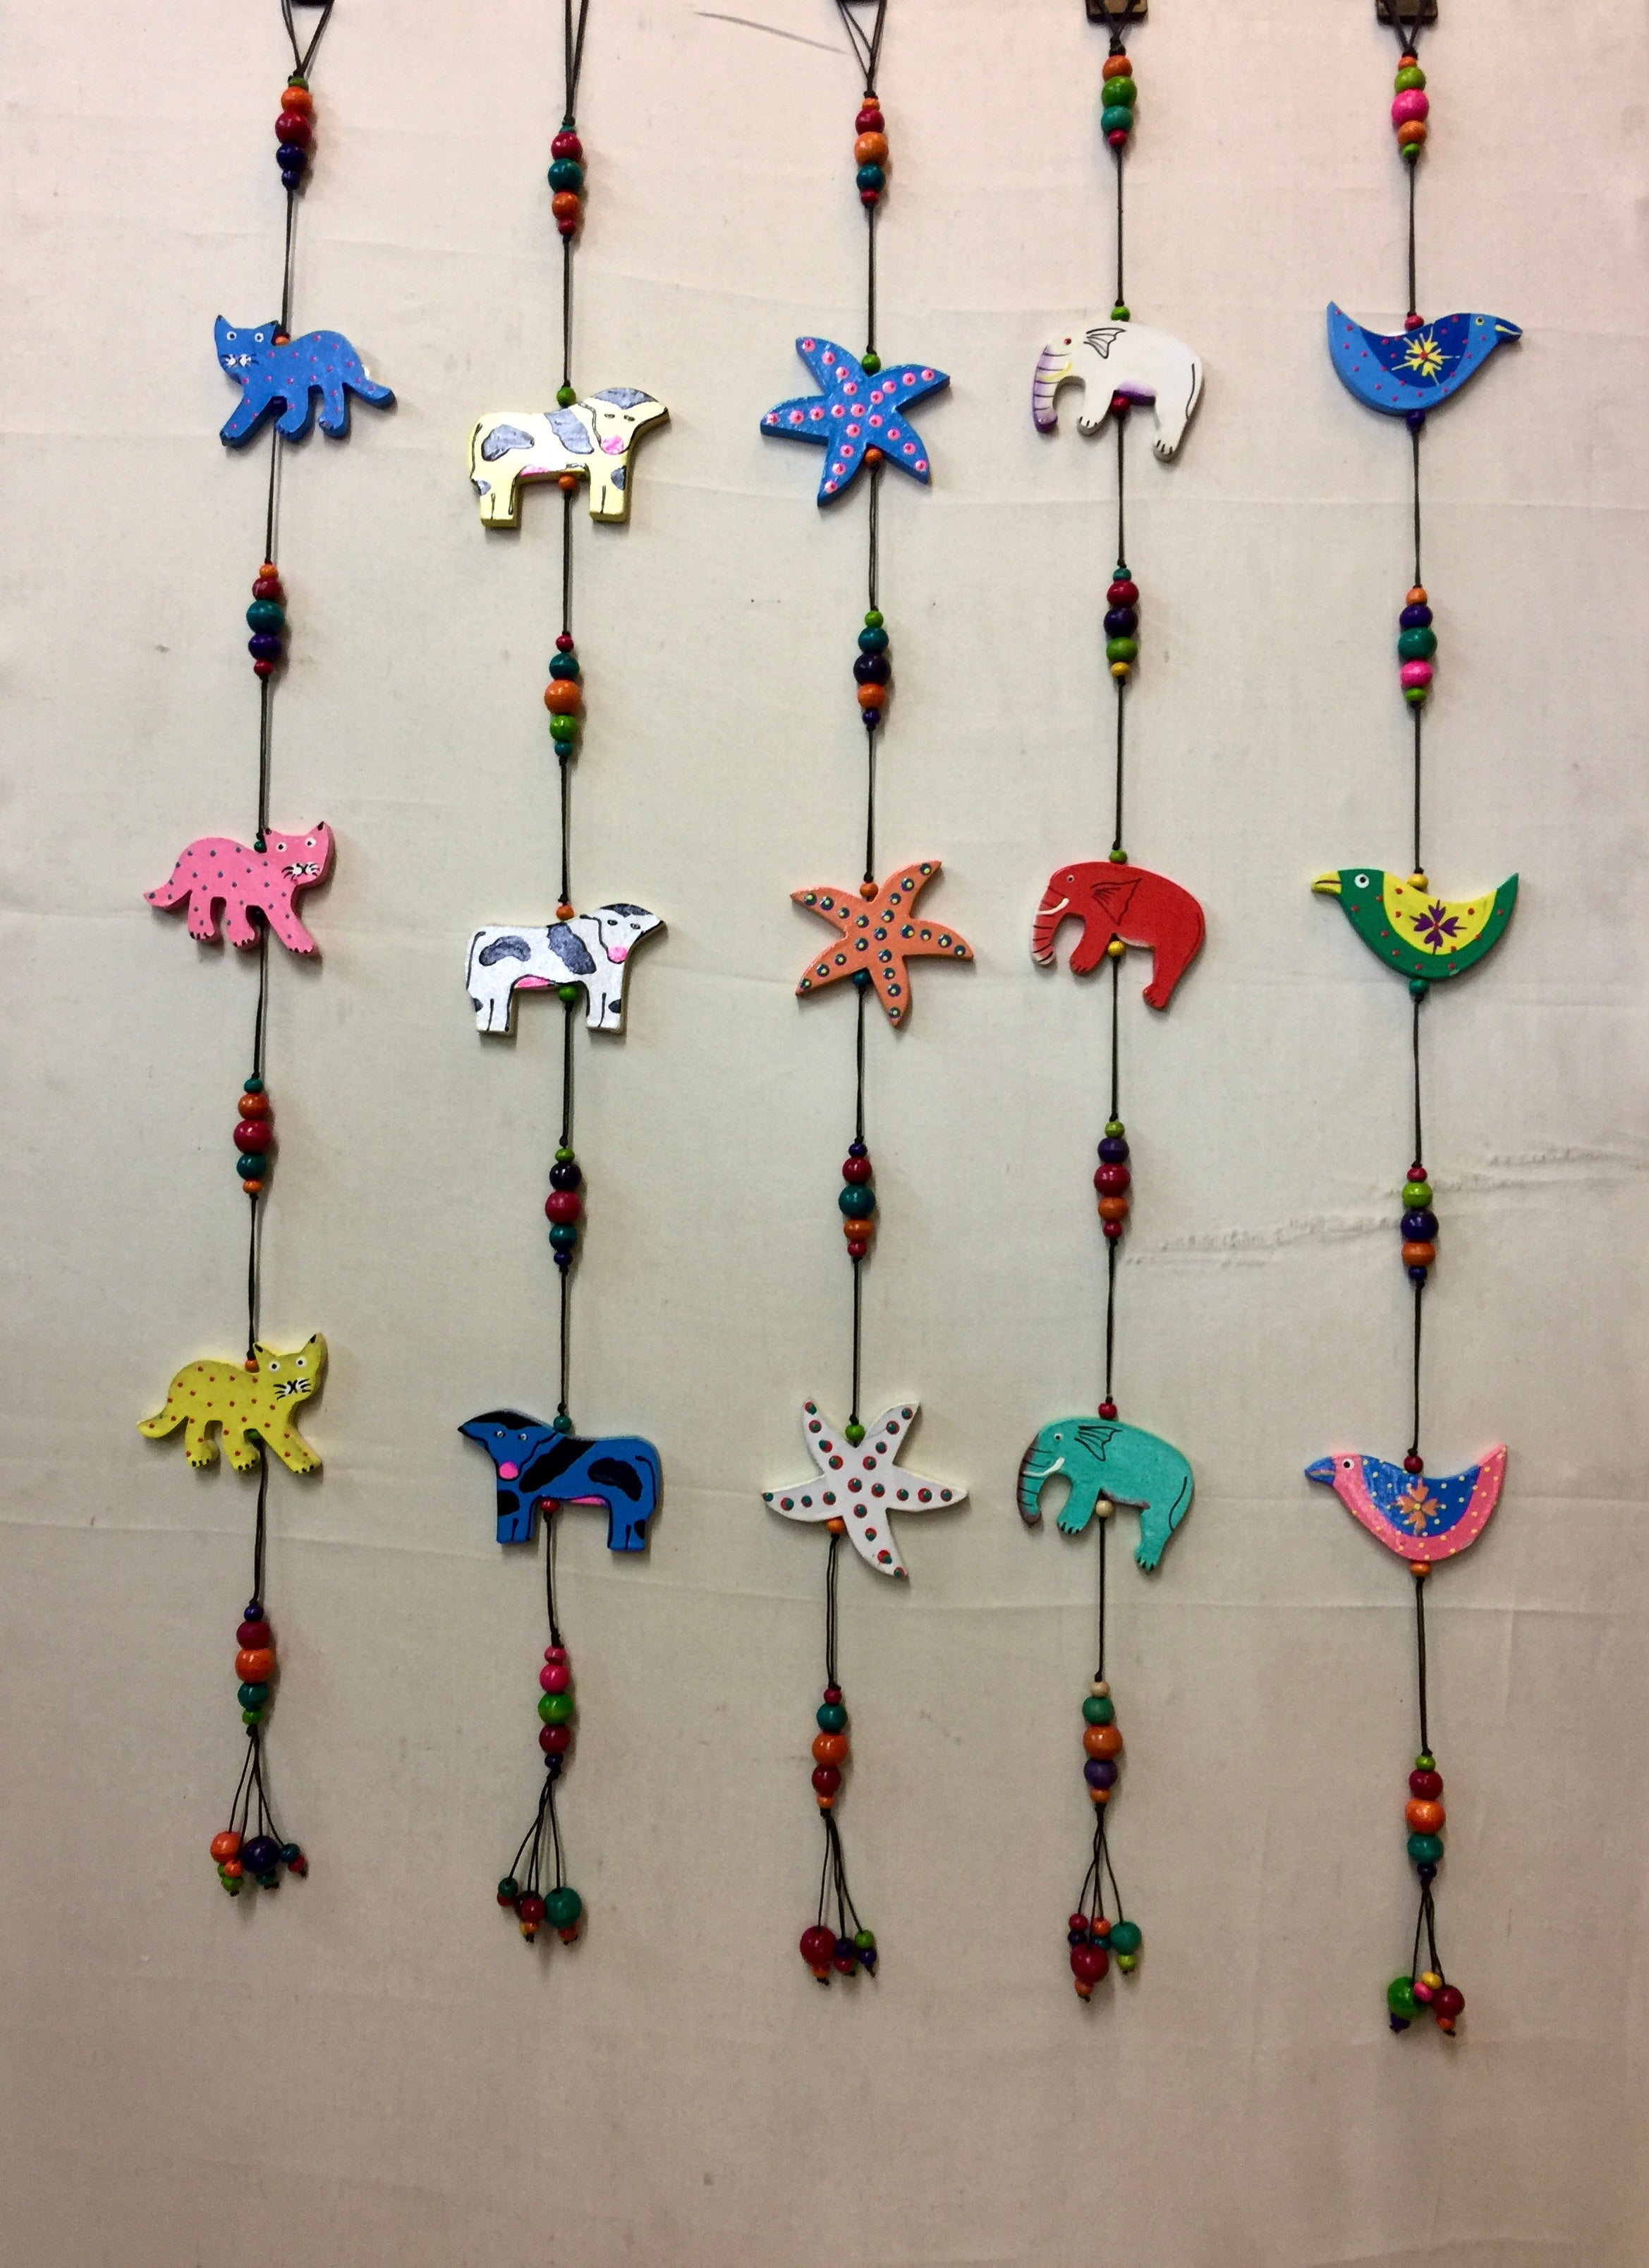 Hanging Decoration - Birds